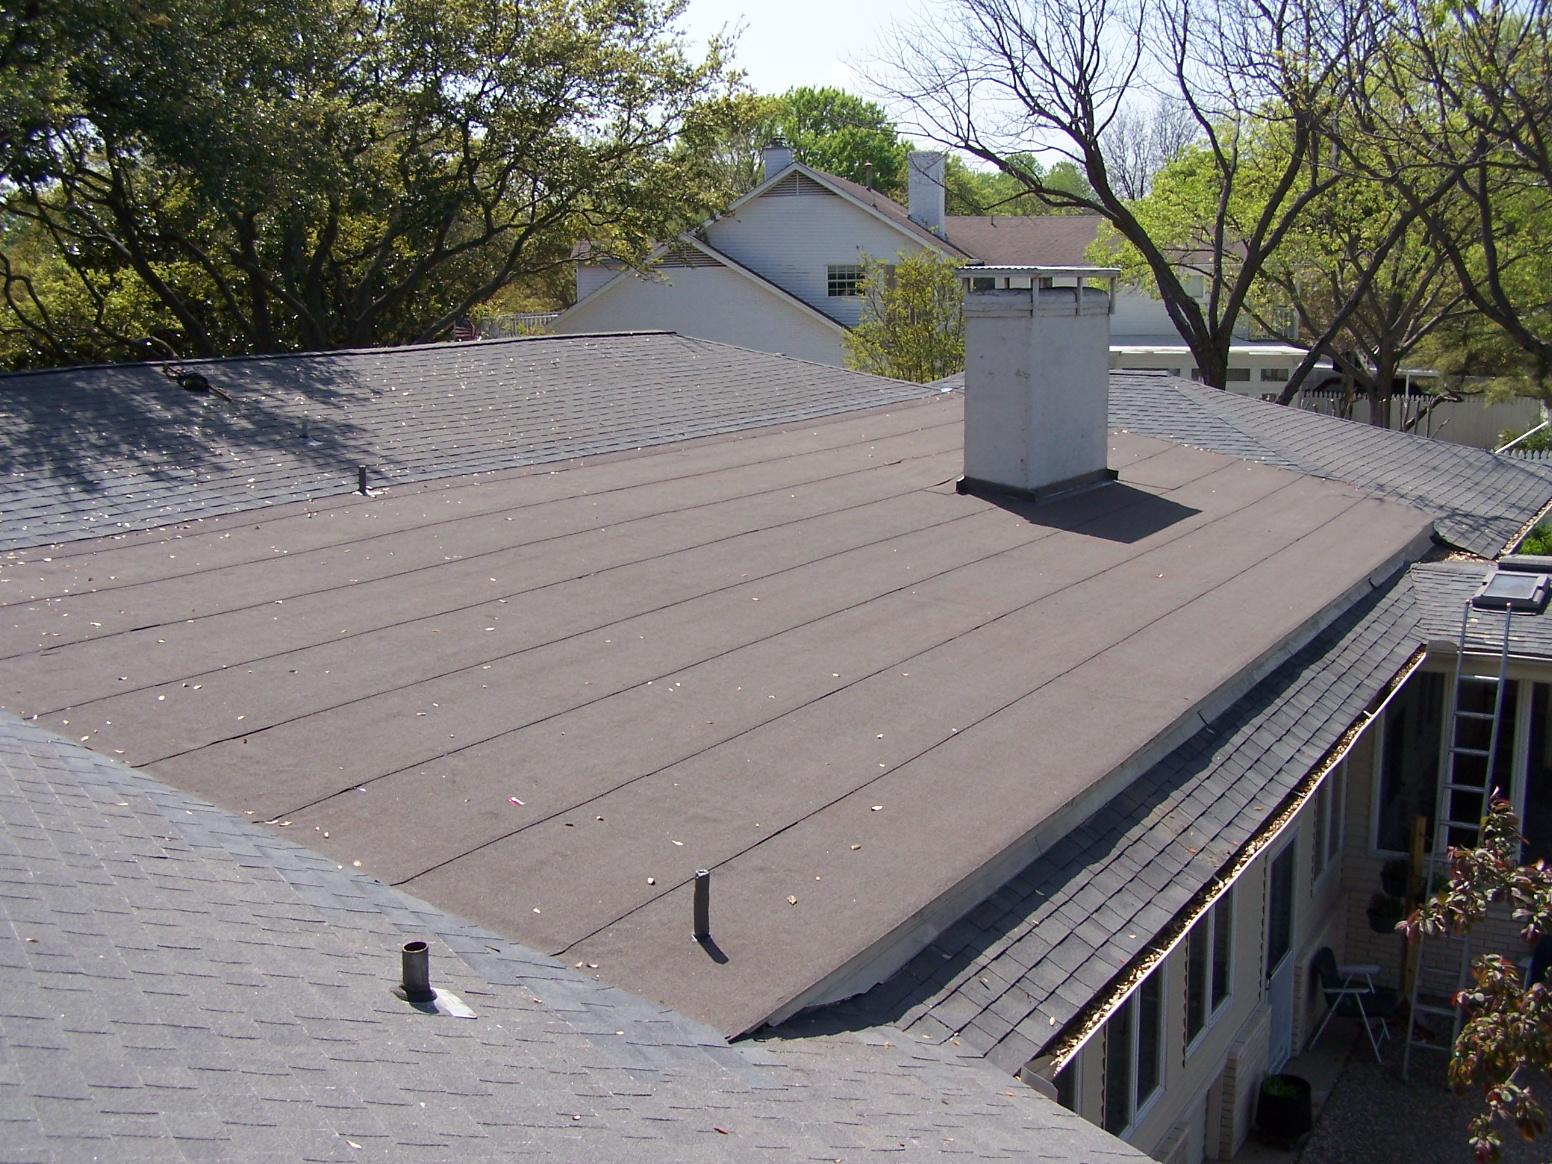 Roof Repair in Garland, TX - After Photo